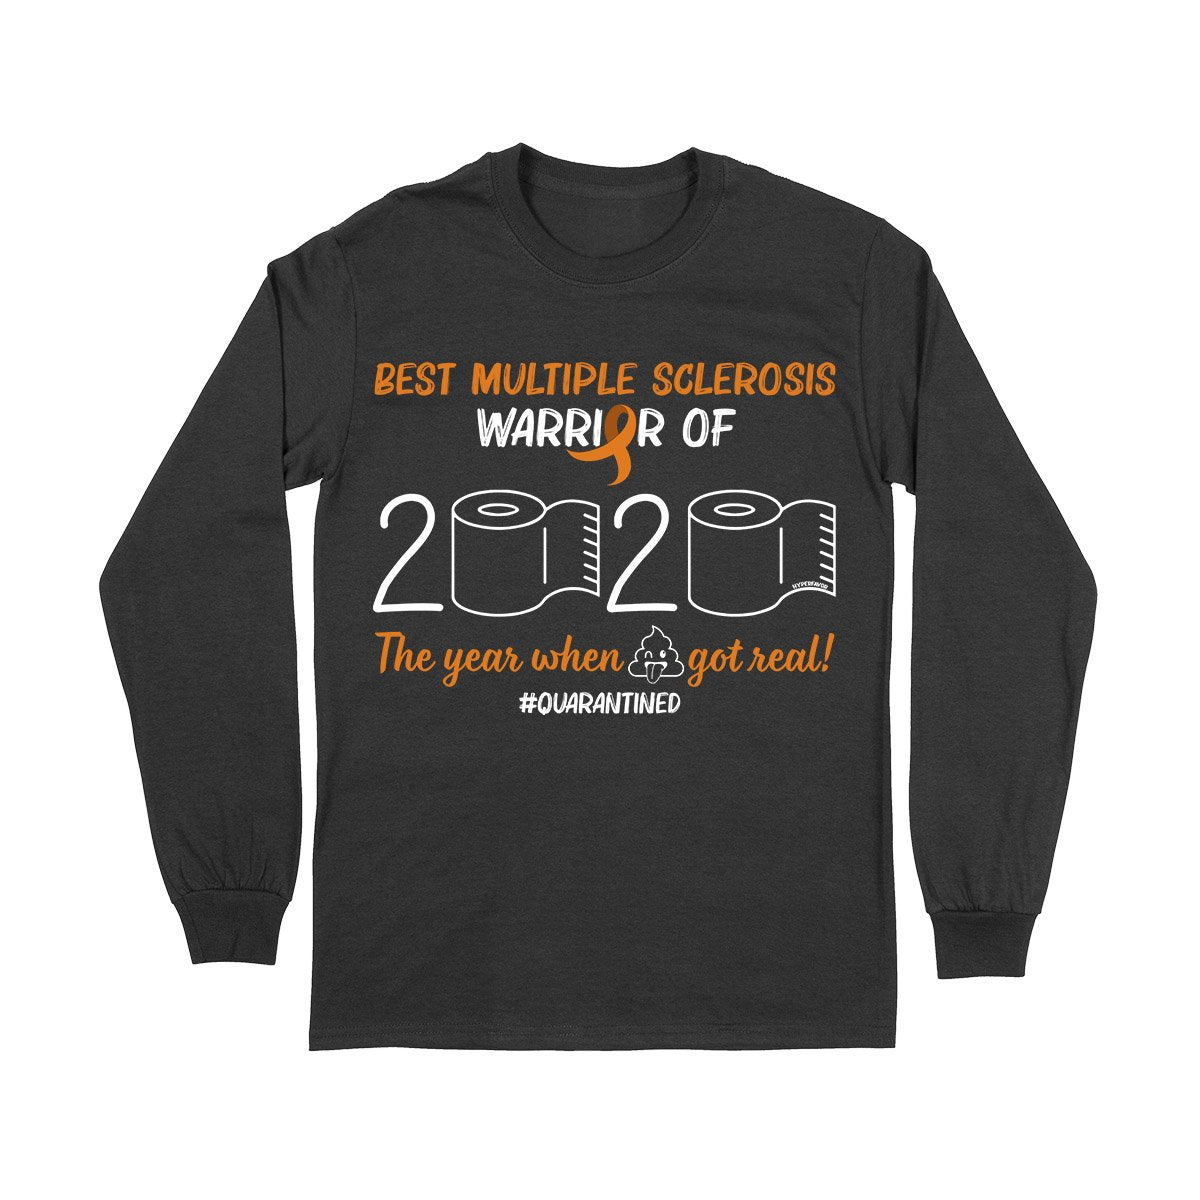 Best MS Warrior Long Sleeve T-shirt, MS Awareness Month Shirt, Multiple Sclerosis Awareness Gifts